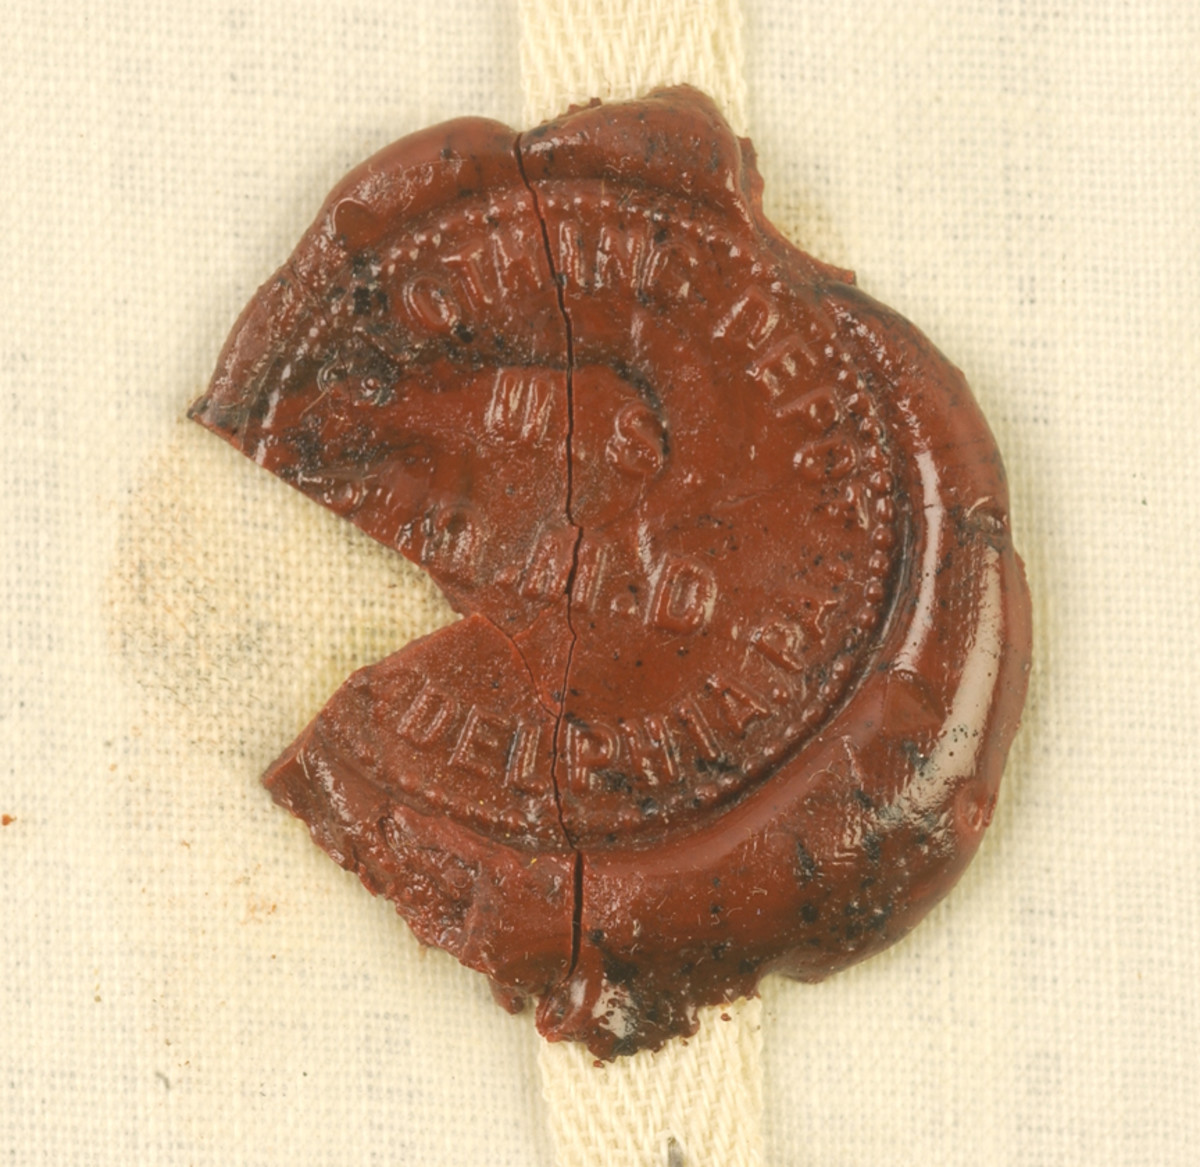 """Detail of the wax seal on the CBI patch reveals the logo of the """"Clothing Dept. U.S. Q.M.D. Philadelphia, Pa."""""""